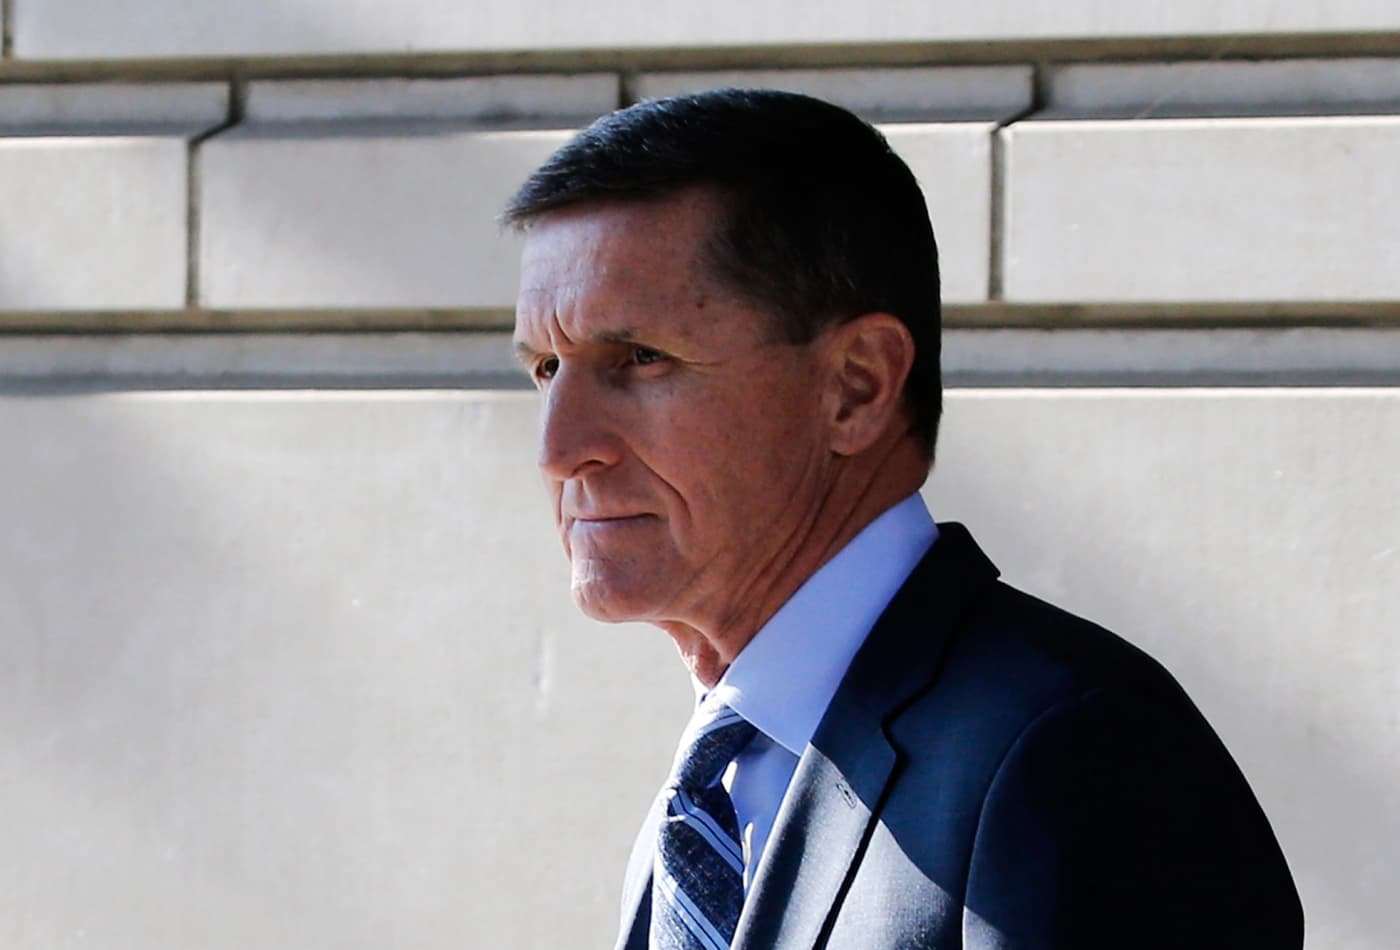 Prosecutor under fire for court filings benefiting Trump allies Roger Stone and Michael Flynn will become DEA chief, report says